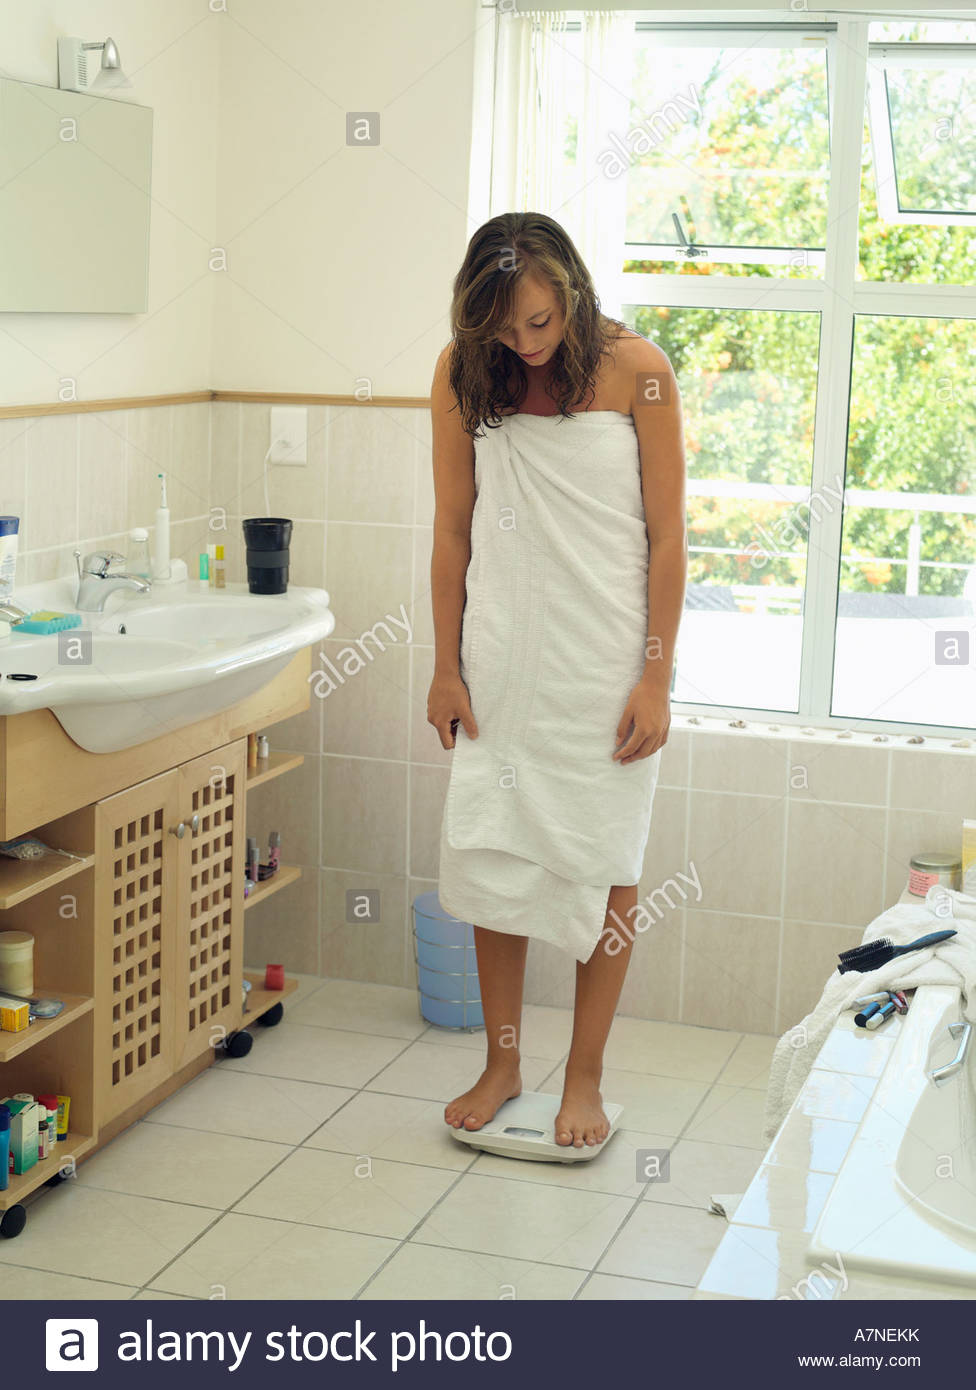 Teenage girl 15 17 standing on bathroom weighing scales wrapped in white  towel smiling - Stock fd2c6a924